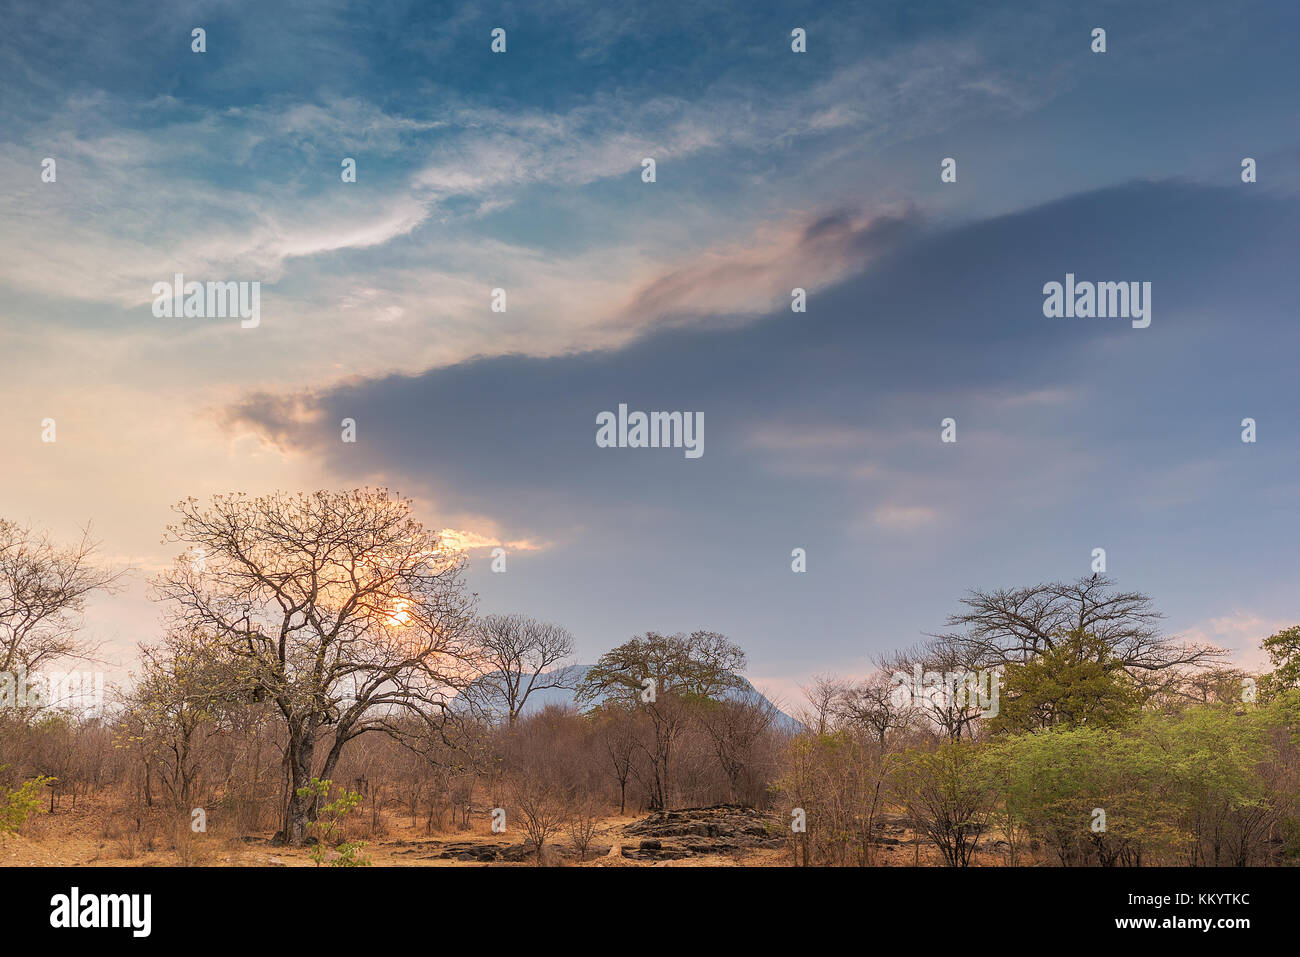 African landscape in Lubango, Angola with trees and dramatic sunset. - Stock Image